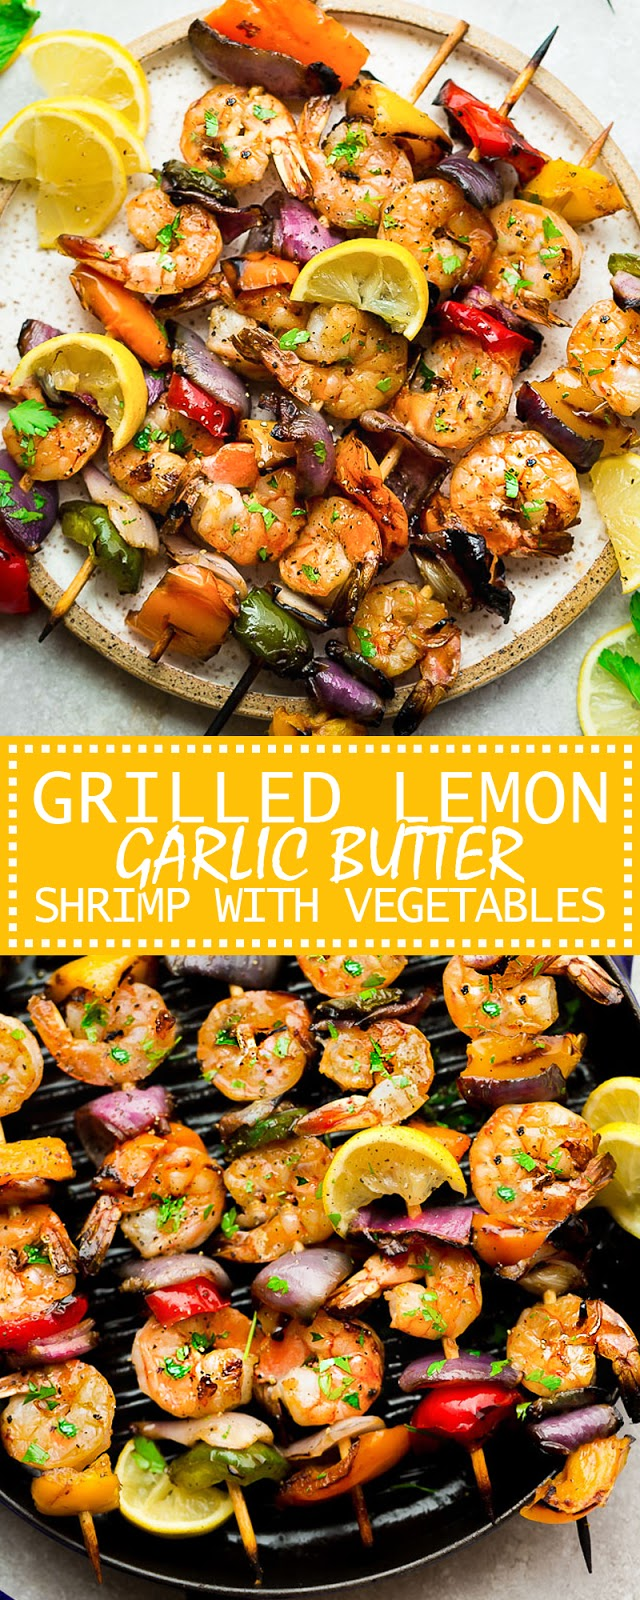 GRILLED LEMON GARLIC BUTTER SHRIMP WITH VEGETABLES